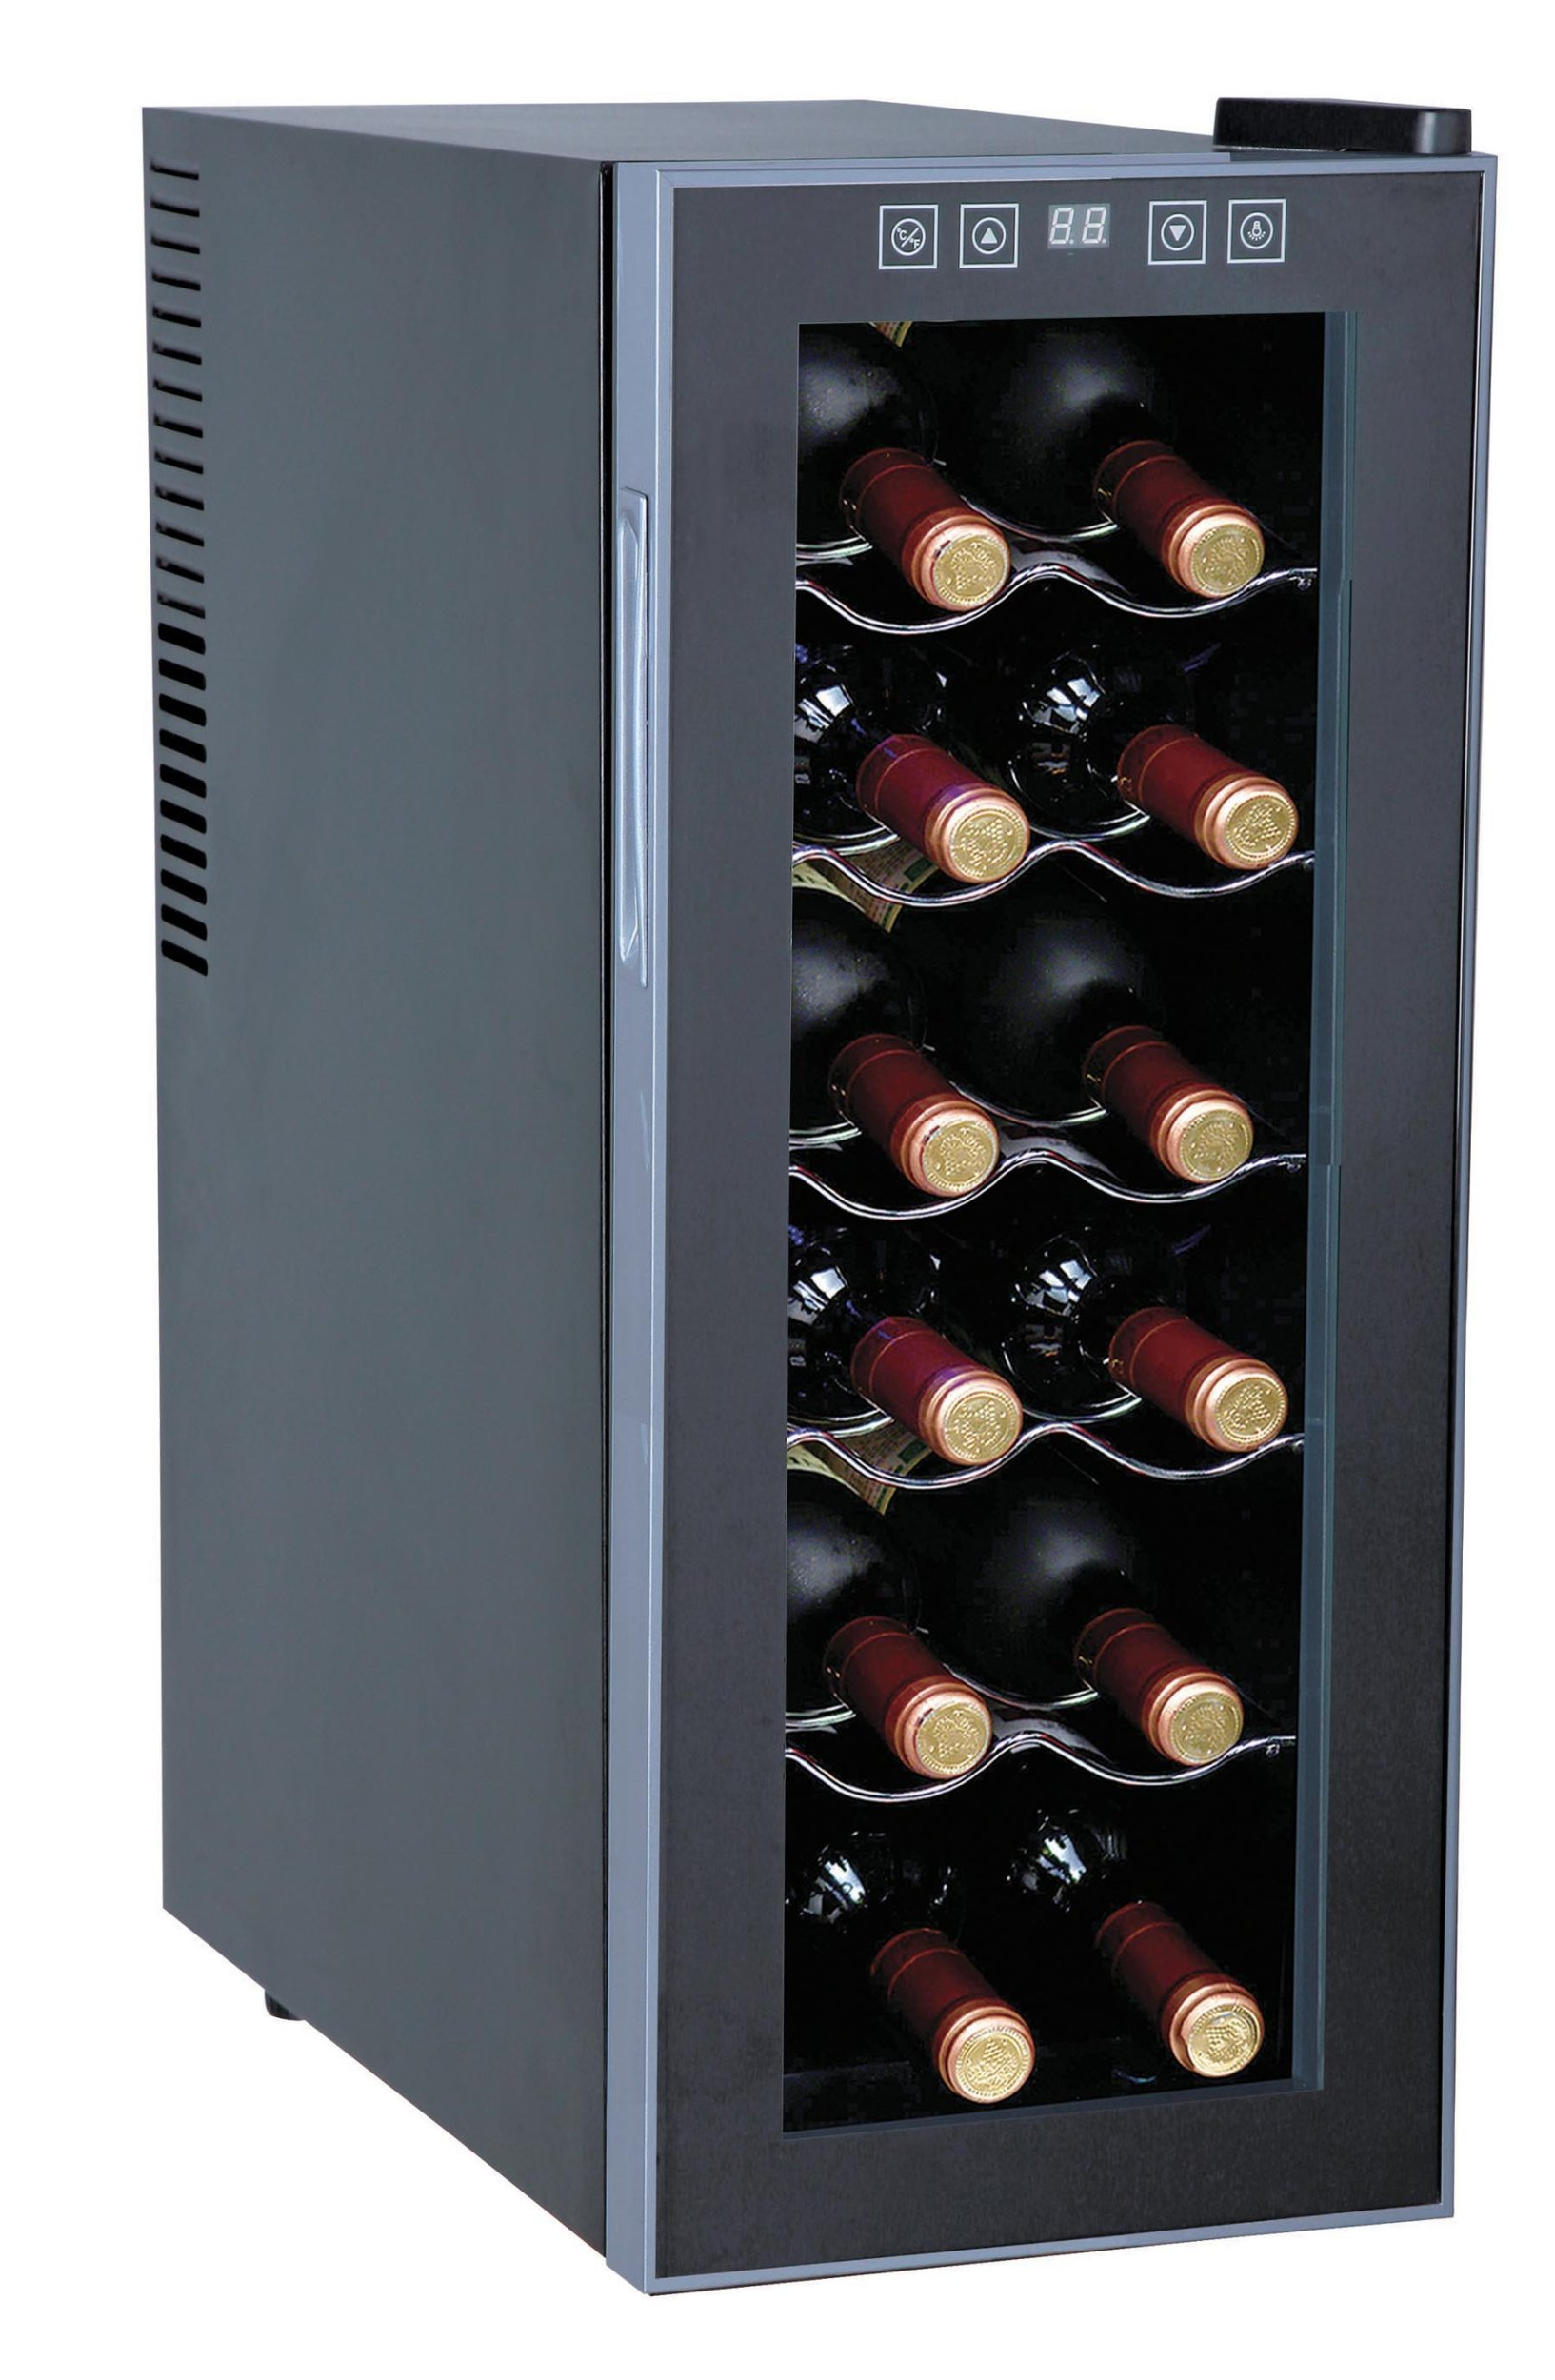 Sunpentown WC-1271 ThermoElectric 12-Bottle Slim Wine Cooler by Sunpentown